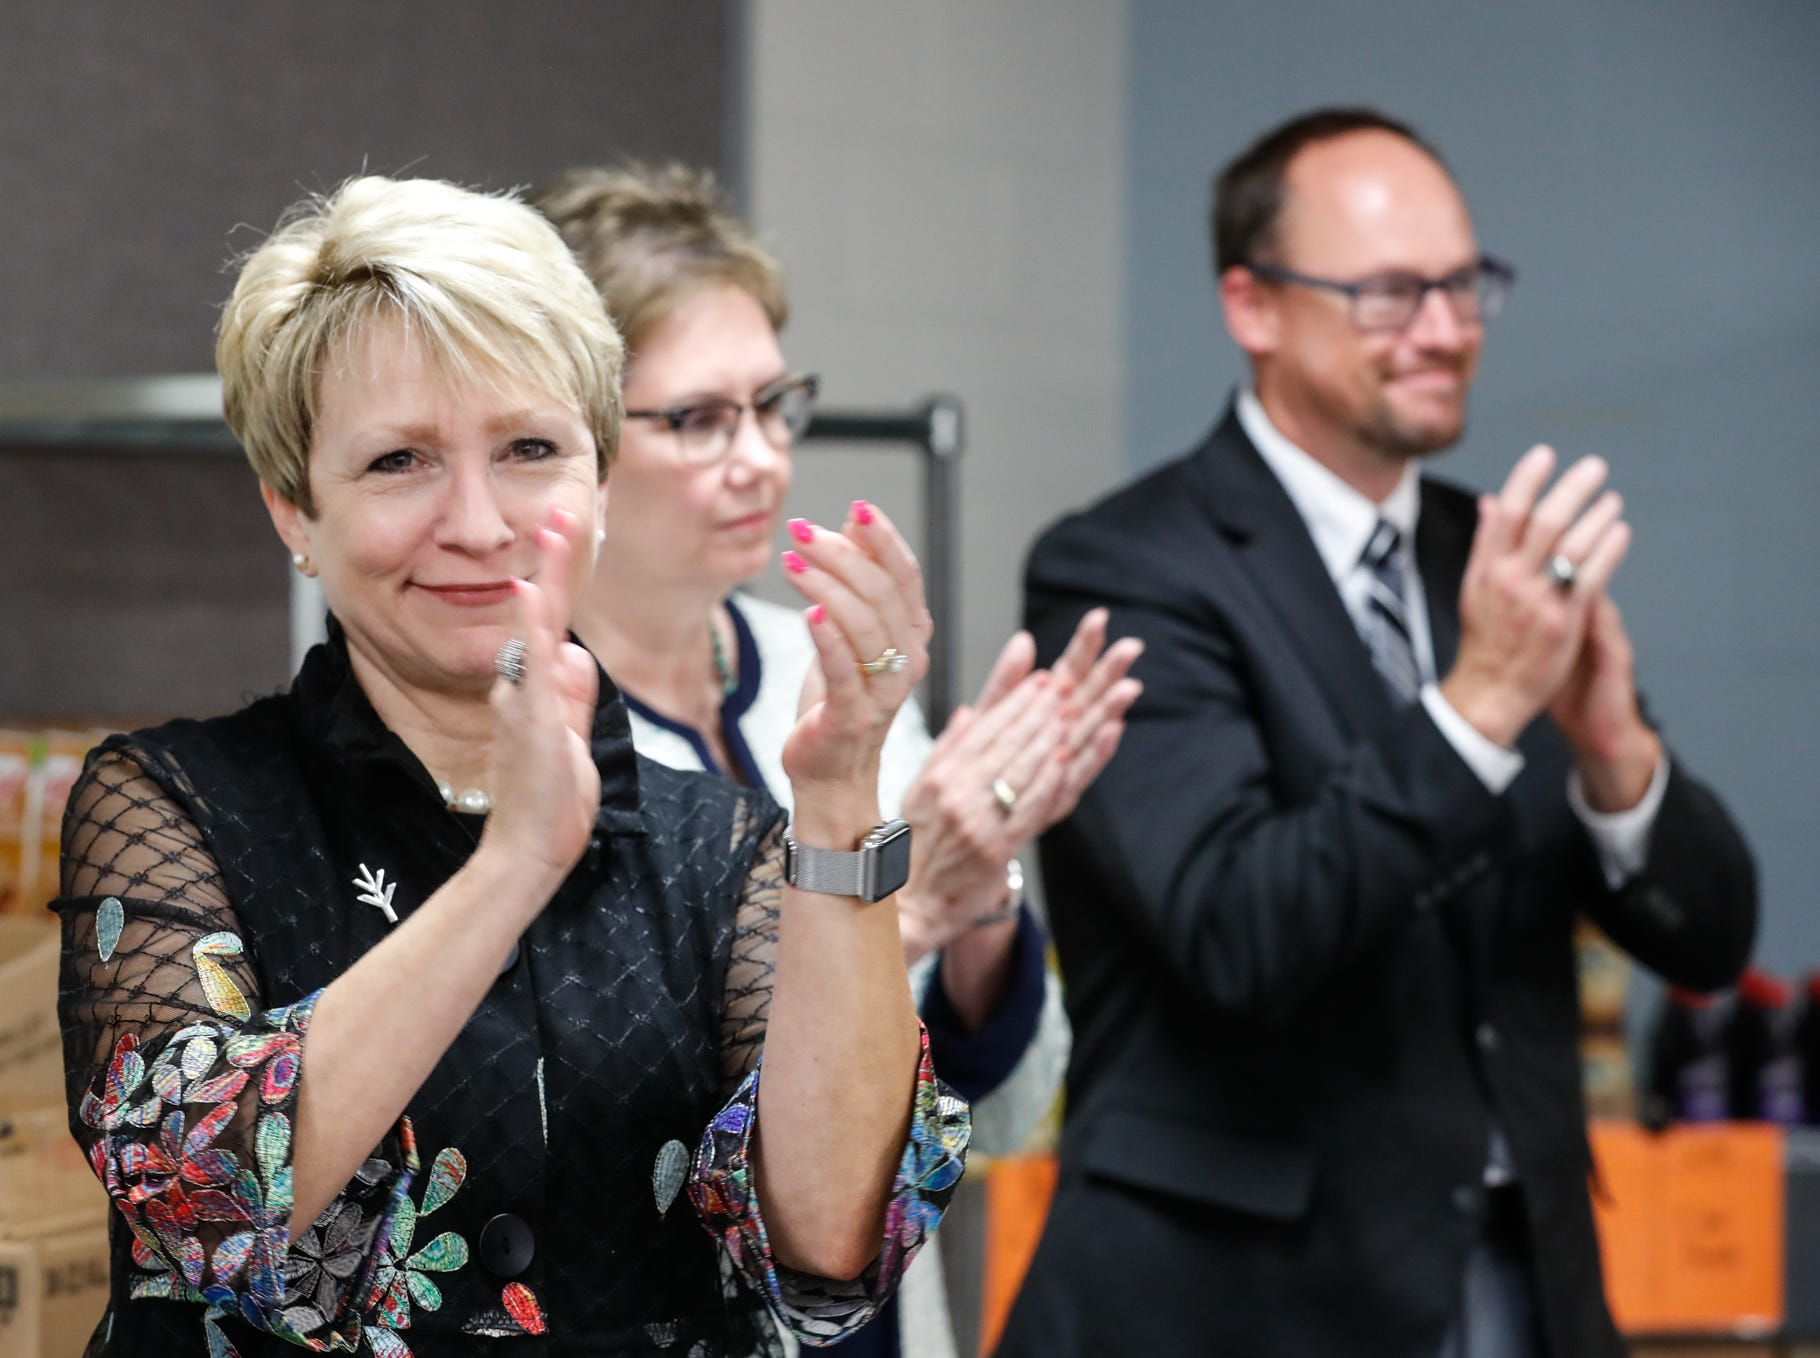 From left, Dr. Sue Ellspermann, president of Ivy Tech, Dr. Kathleen Lee, chancellor of Ivy Tech, Kent Kramer, president of Goodwill, and John Elliott, president/CEO of Gleaners Food Bank, attend the official opening of Gleaners Hamilton County Cupboard food pantry at Ivy Tech in Noblesville Ind. on Thursday, Sept. 13, 2018. The Joint partnership among Gleaners, Ivy Tech and Goodwill will serve college students who are food-insecure.